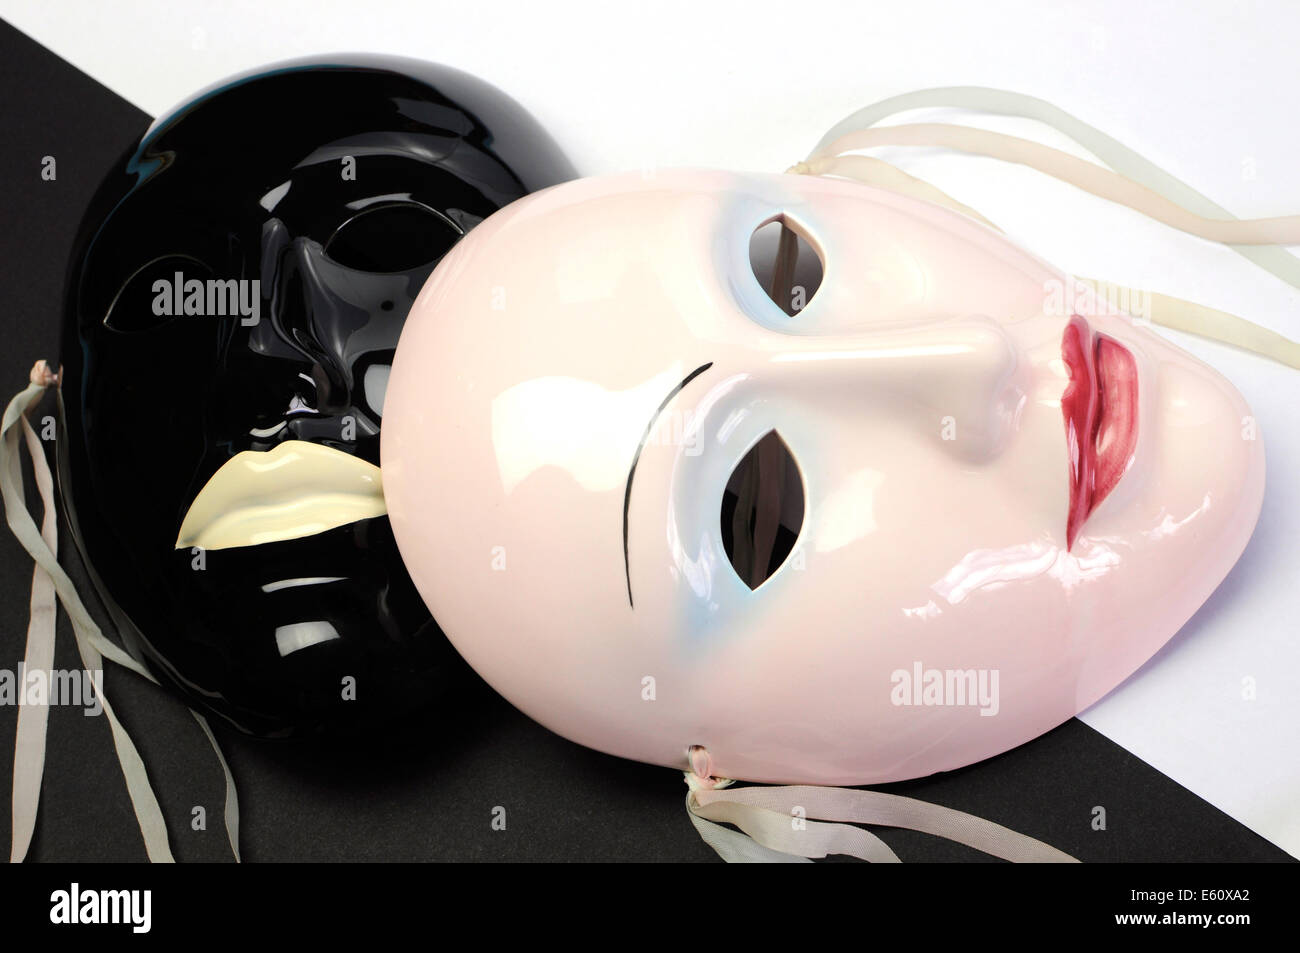 Black and white theme ceramic masks for acting, performance or theater concept. Close up. - Stock Image